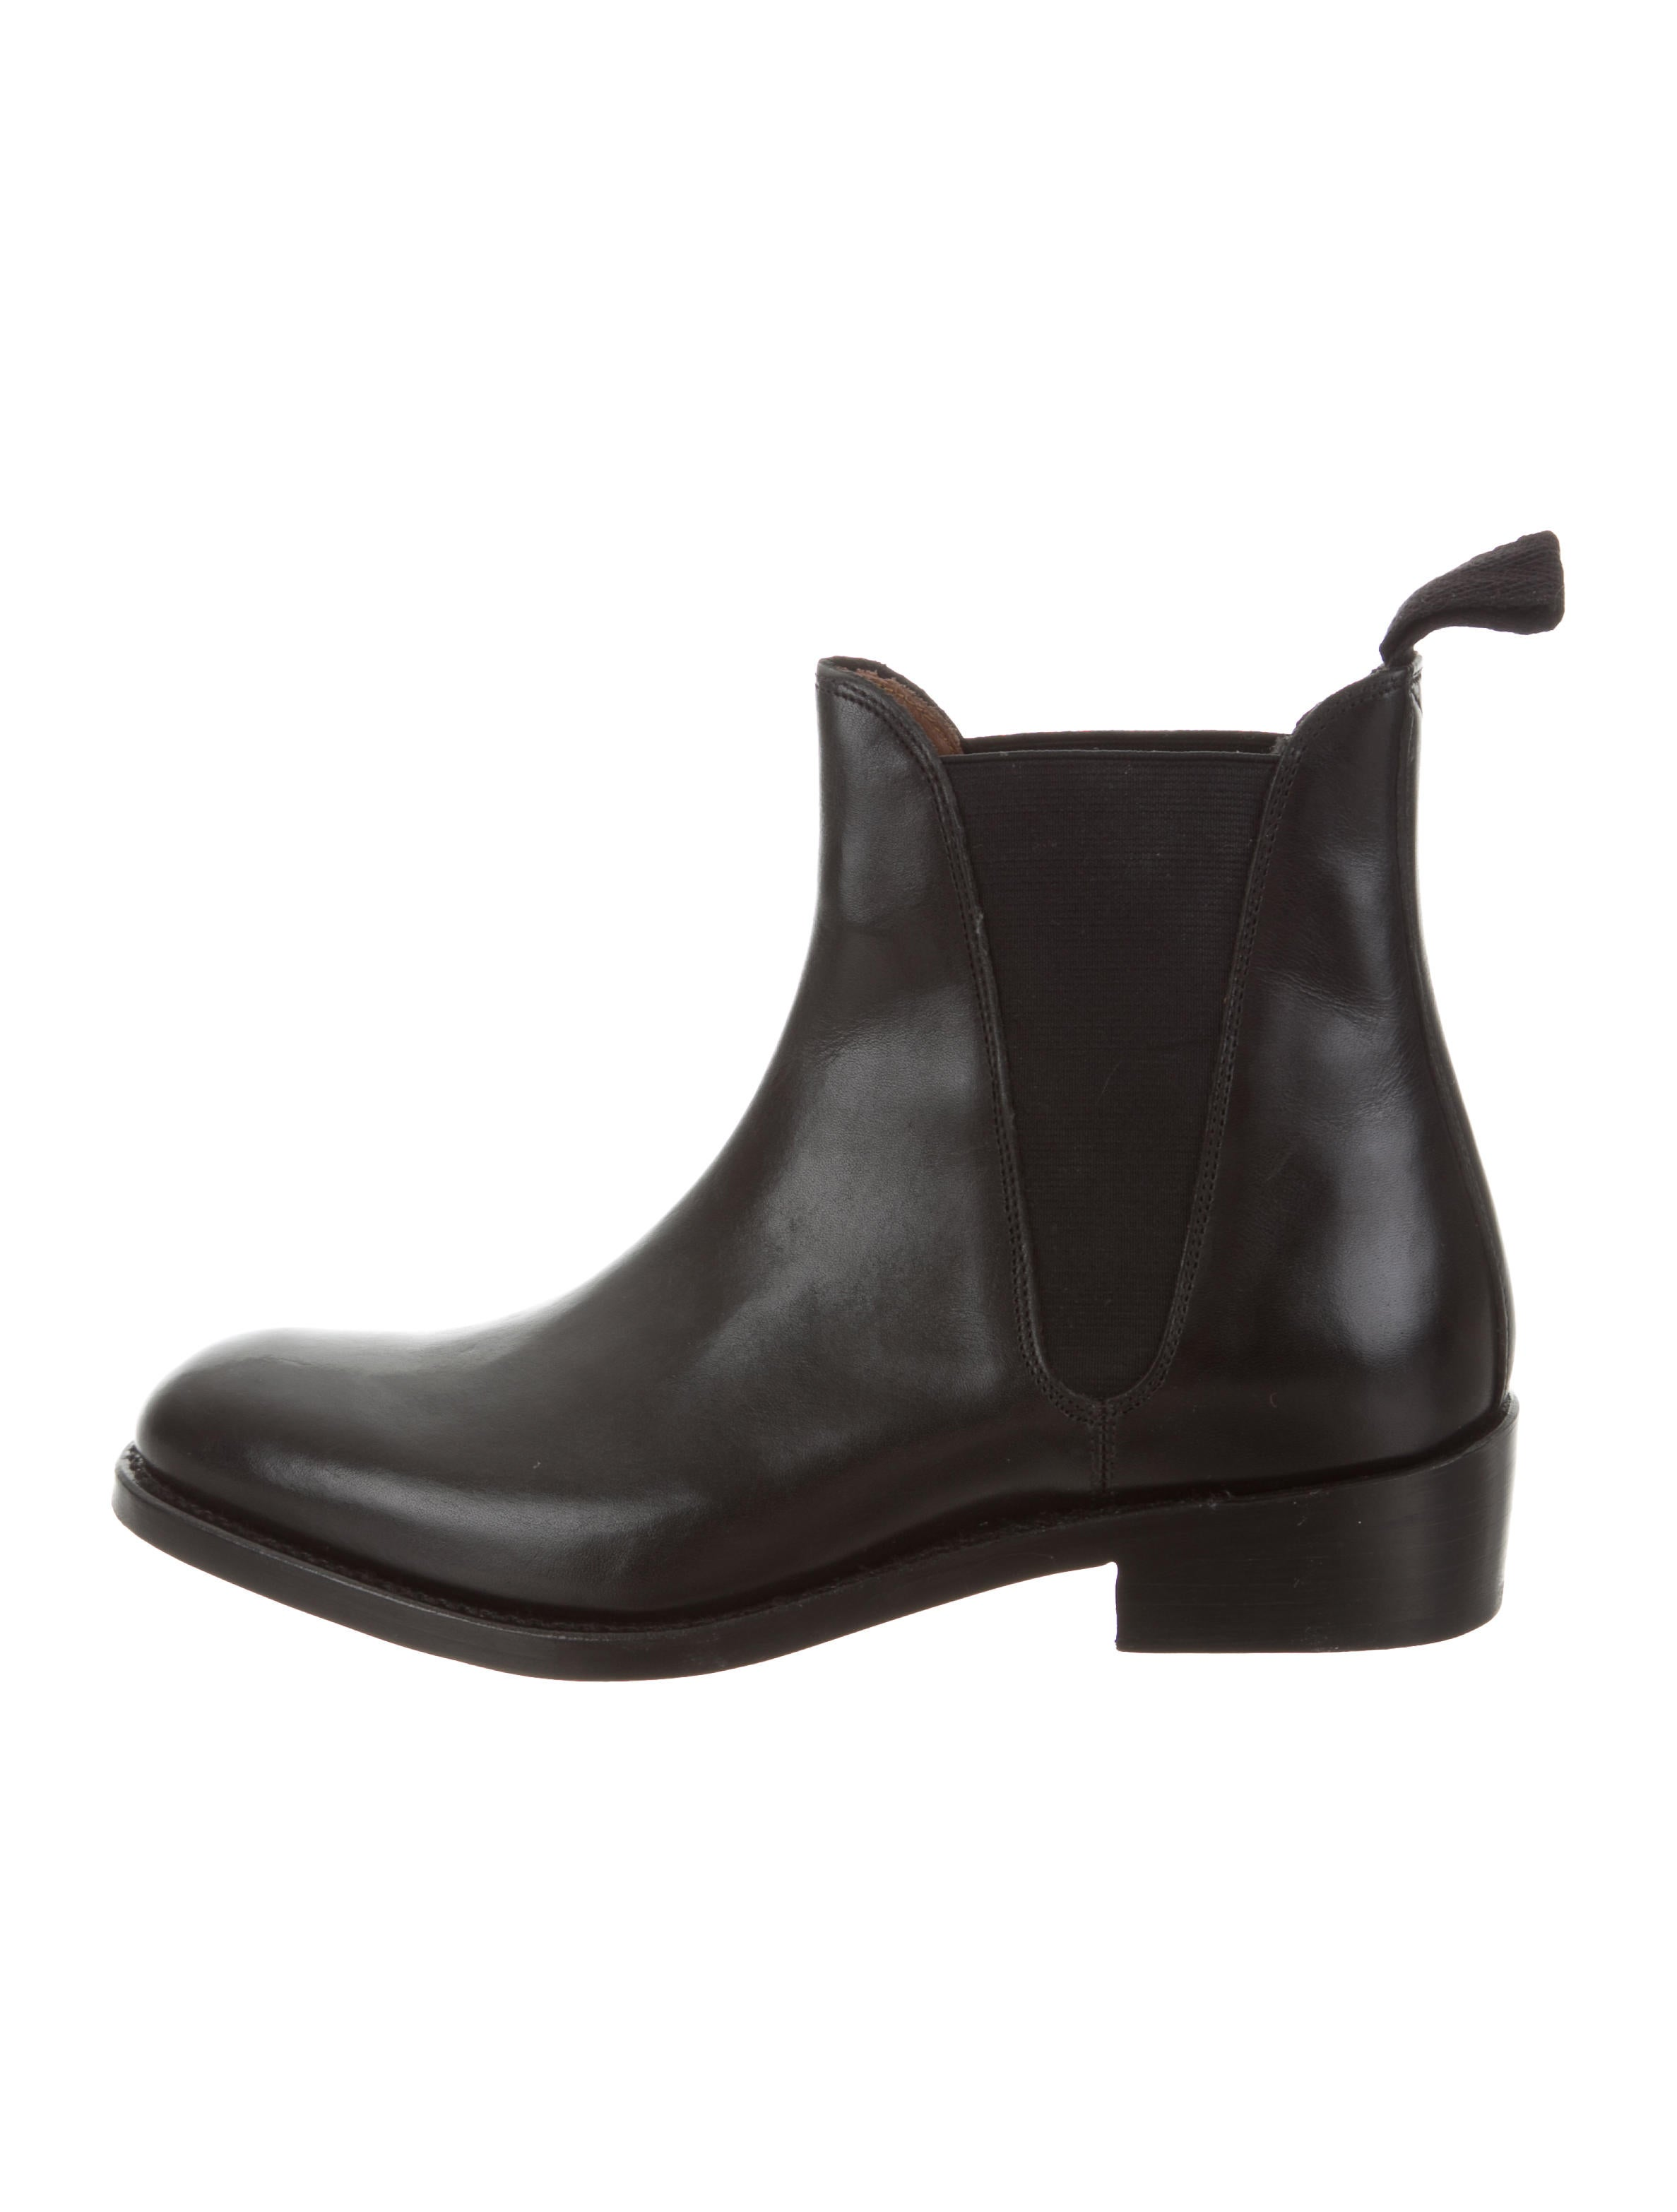 Grenson Lara Ankle Boots cheap countdown package discount popular outlet manchester great sale cheap sneakernews XA3fTVlFqY